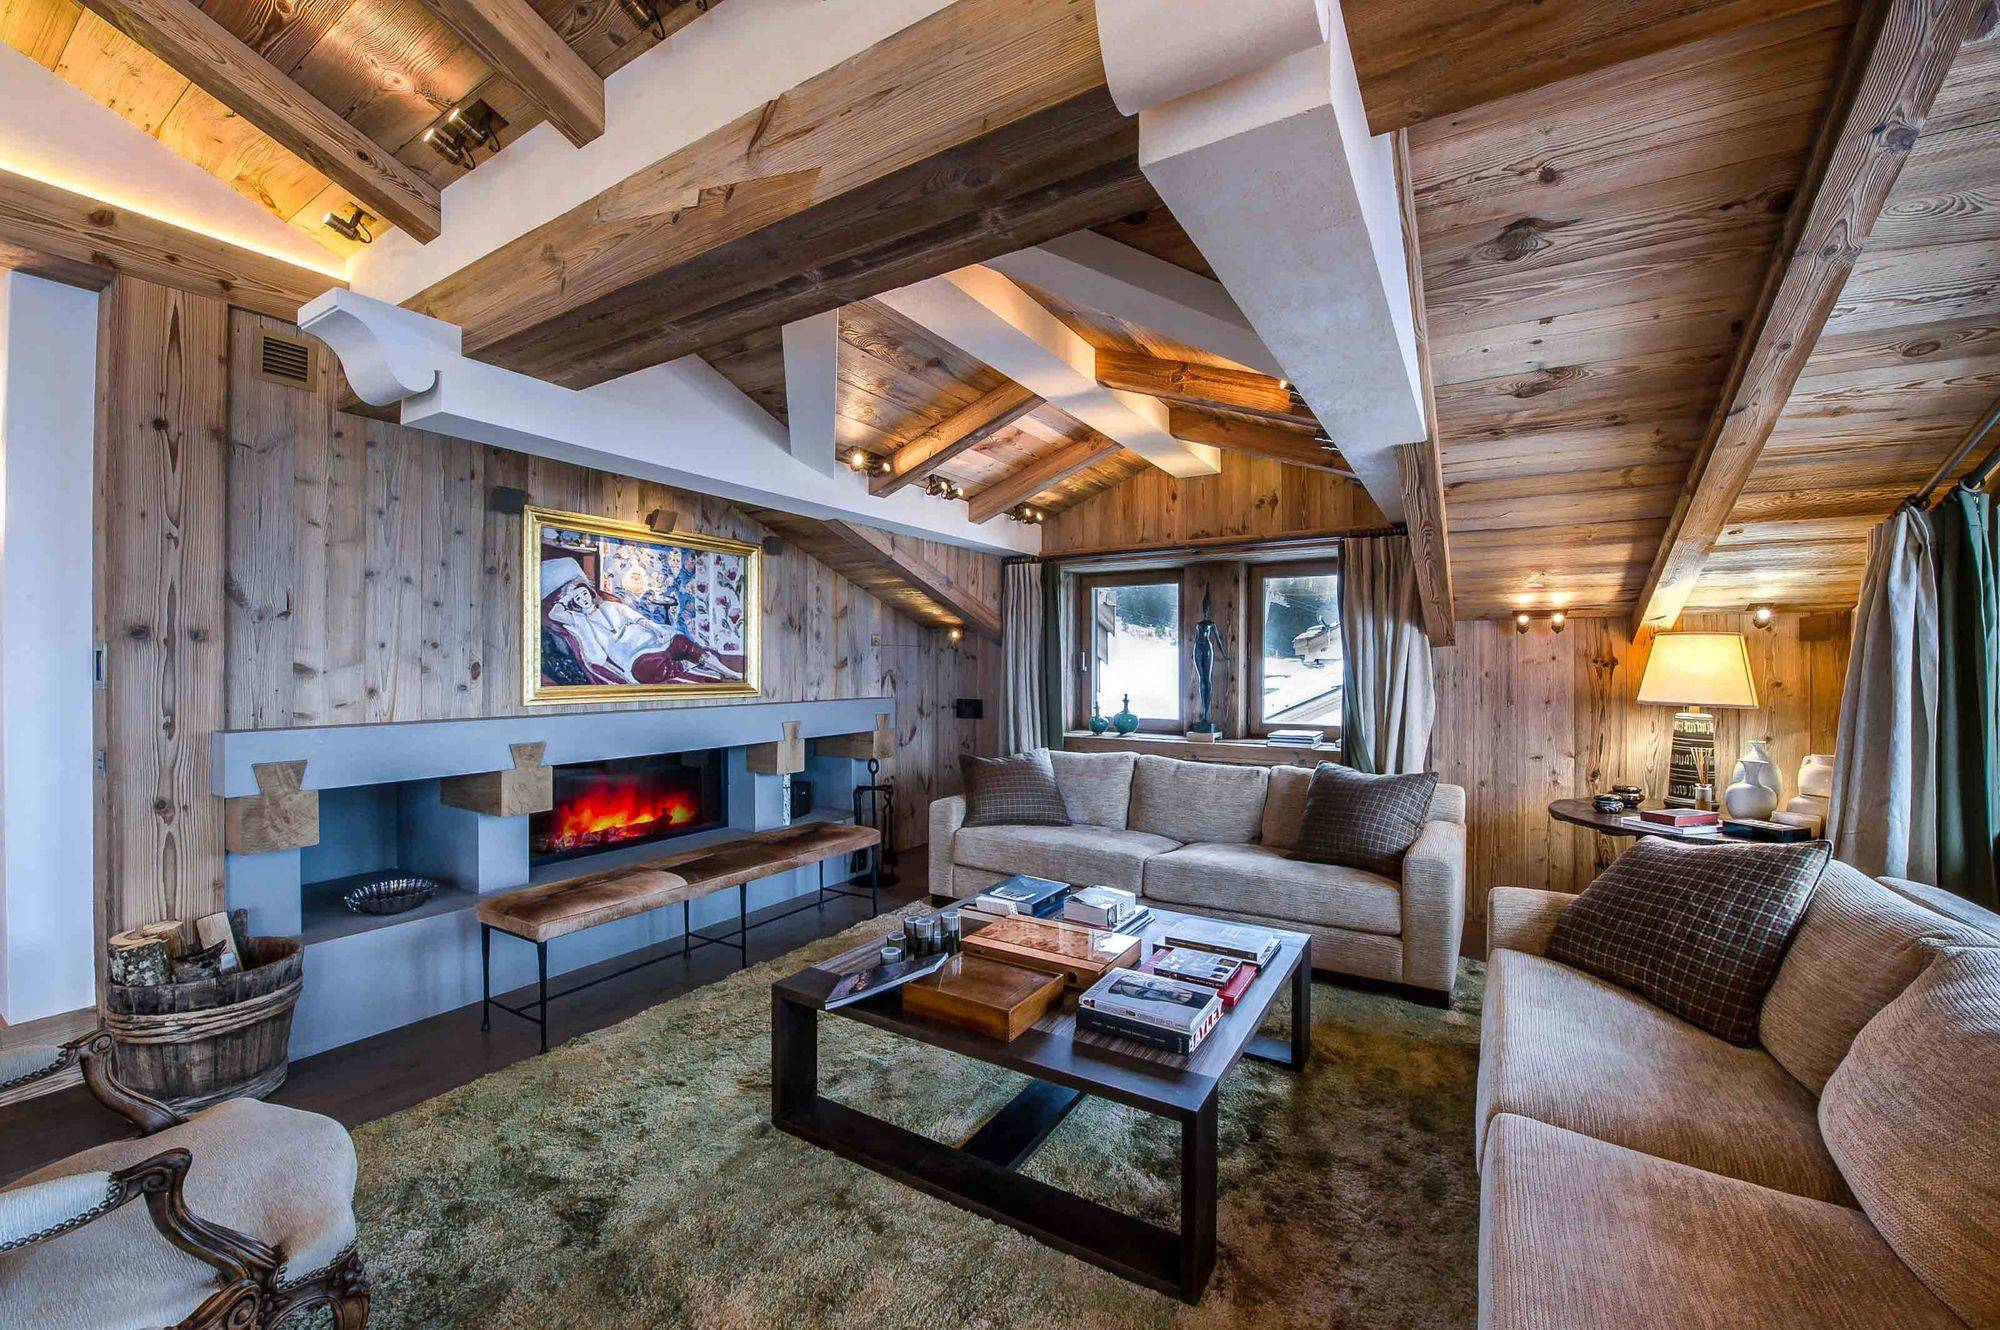 Les Bastidons Accommodation in Courchevel